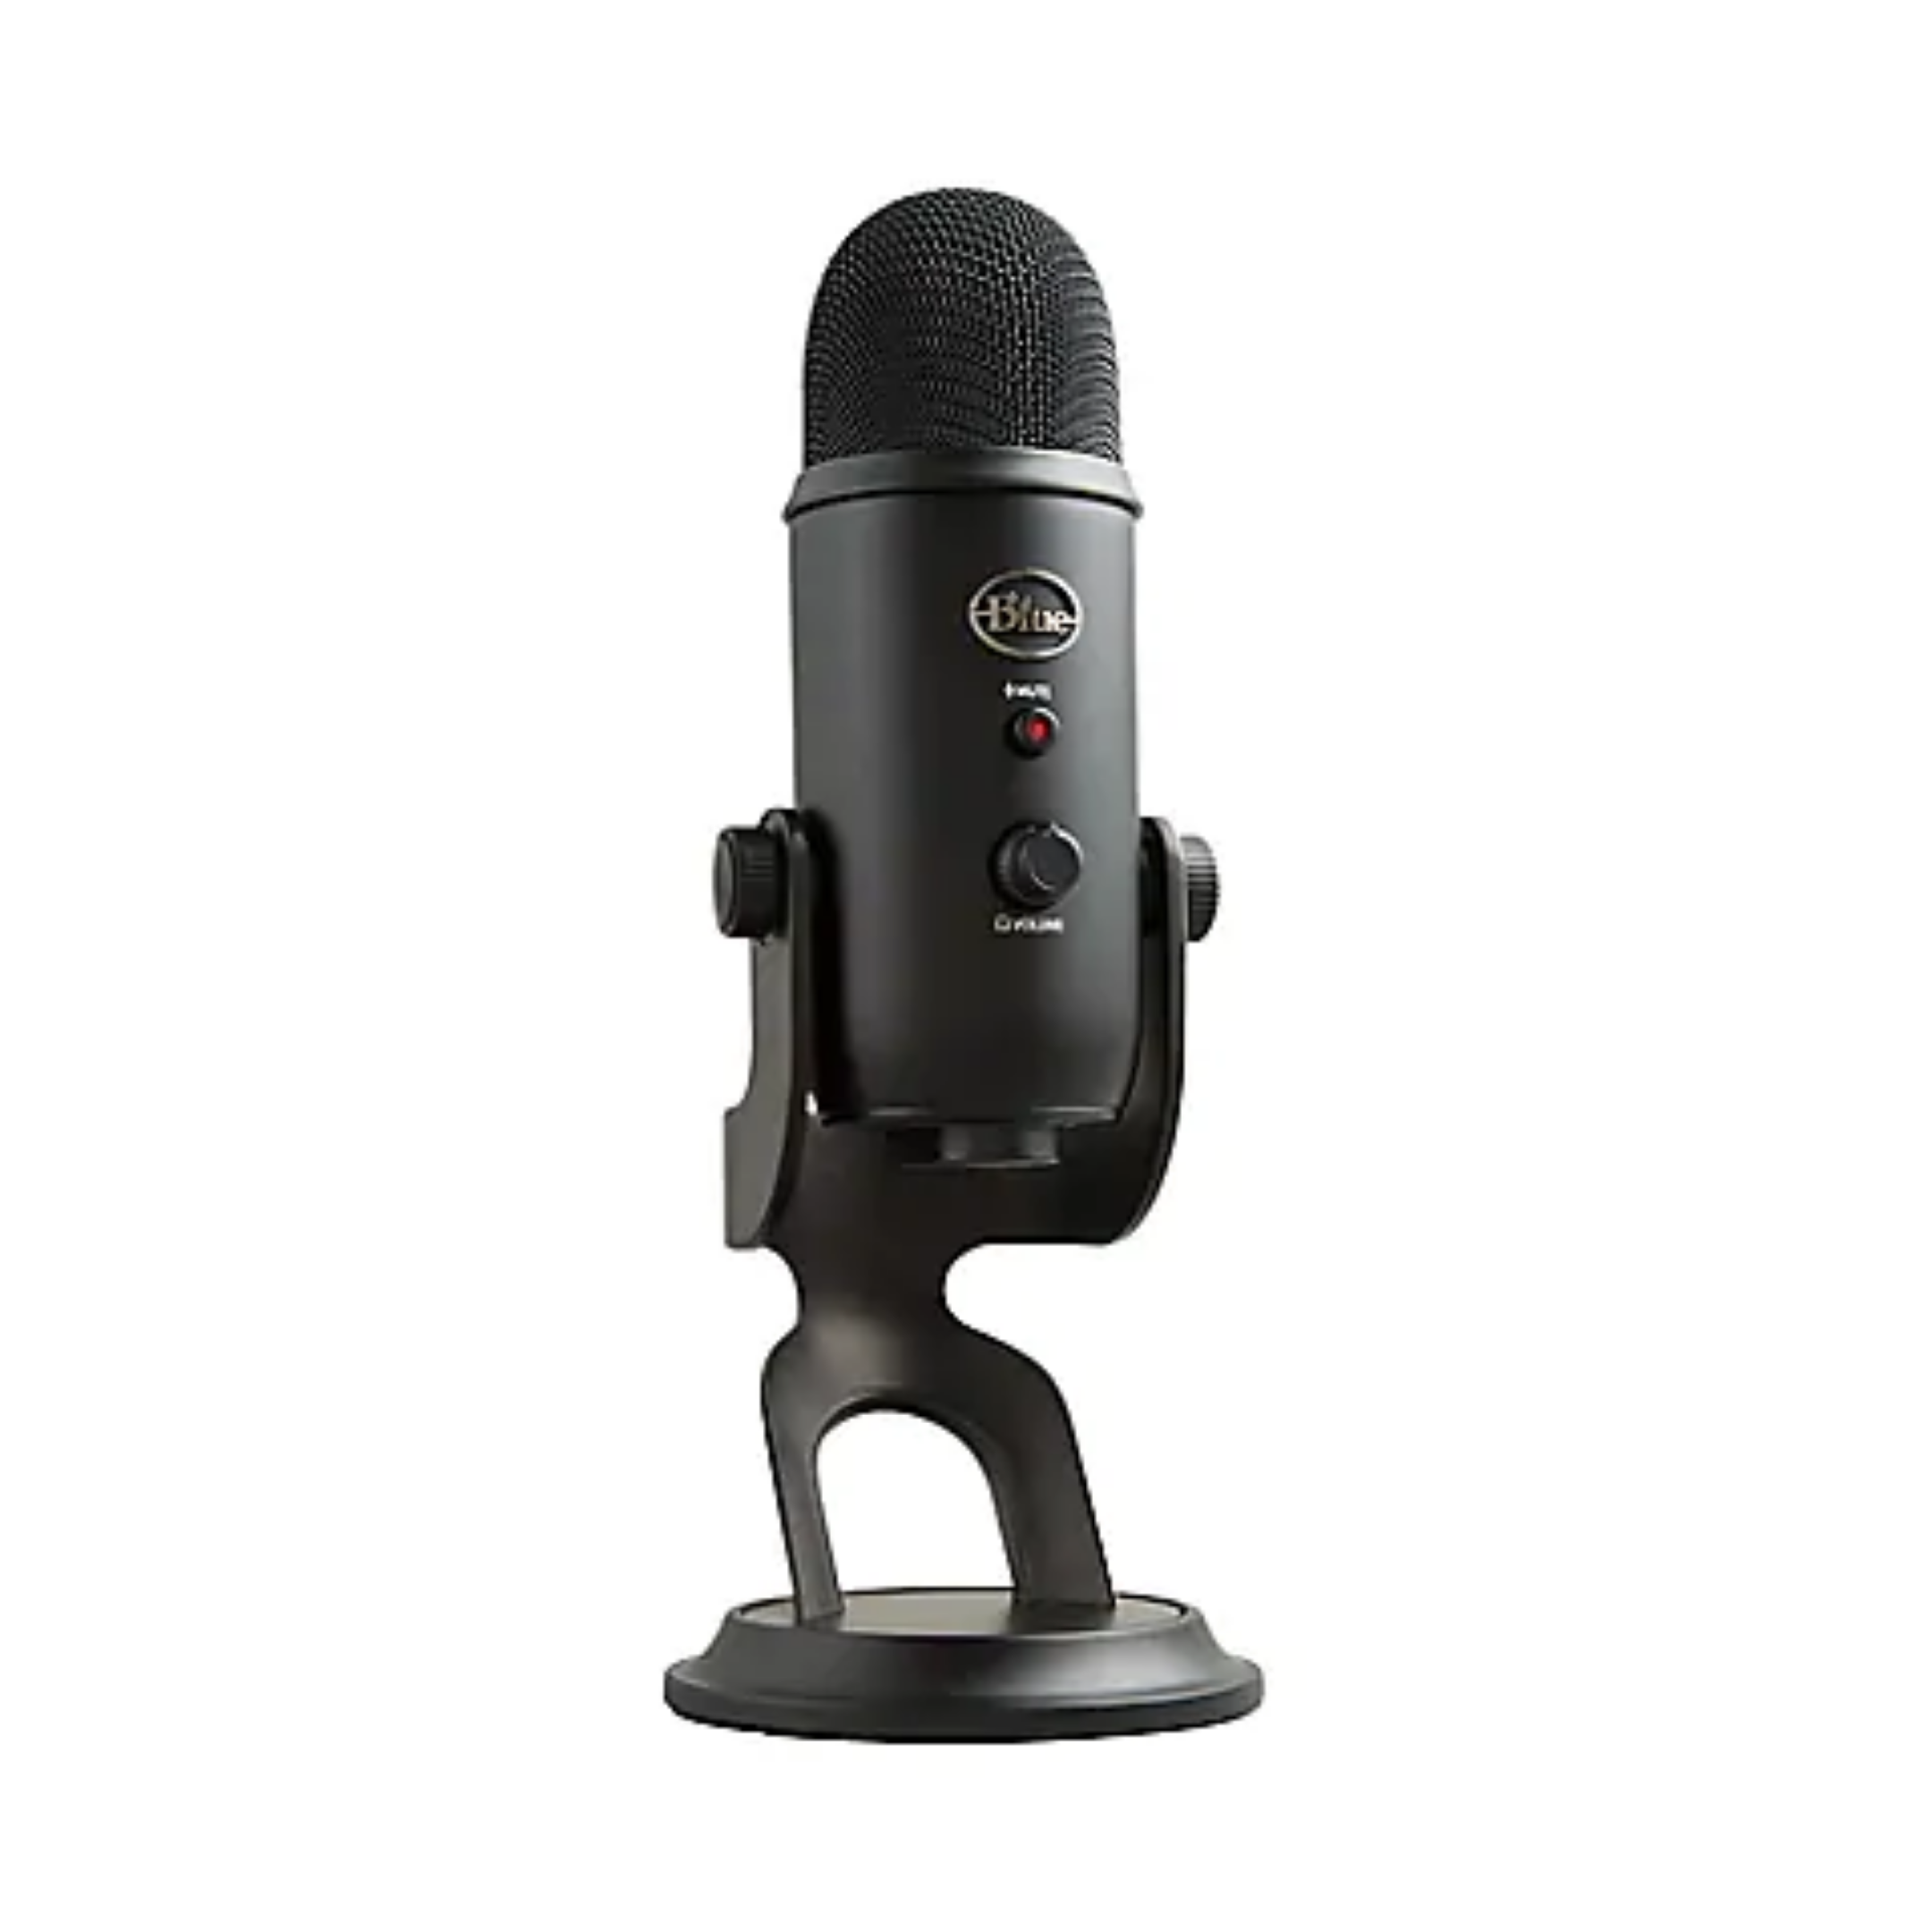 Blue Yeti Microphone Great Microphone For Youtube Videos Blue Yeti Usb Blue Yeti Microphone Blue Yeti Usb Microphone